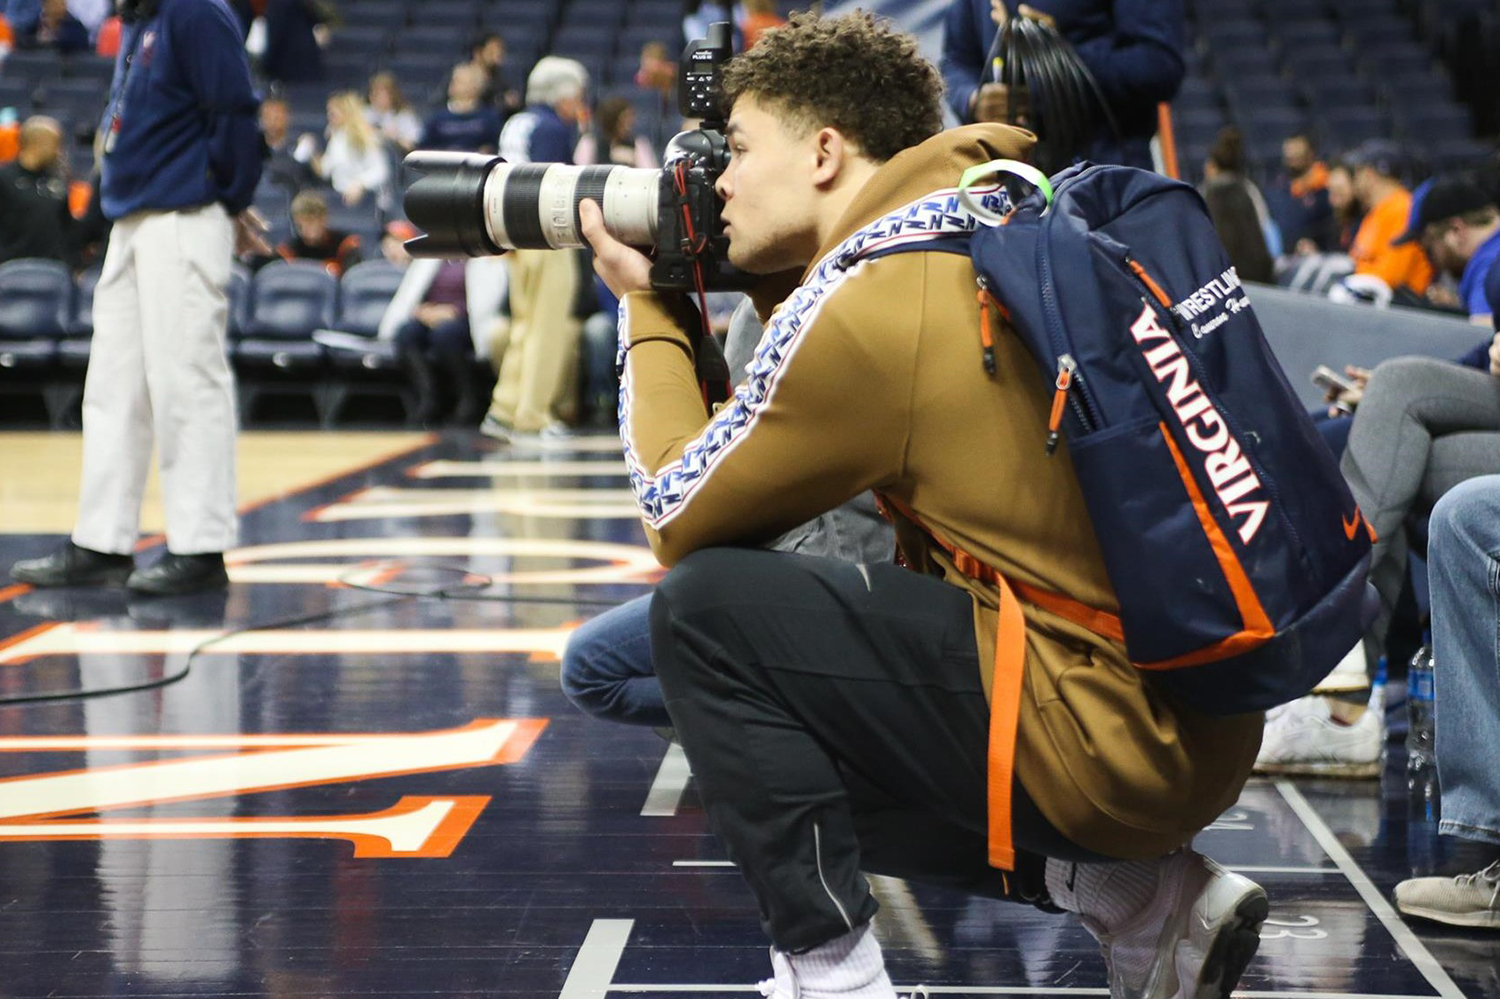 After multiple concussions forced Cam Harrell to give up his wrestling career, he is indulging in a new passion – photography – as an intern in the UVA athletics department.